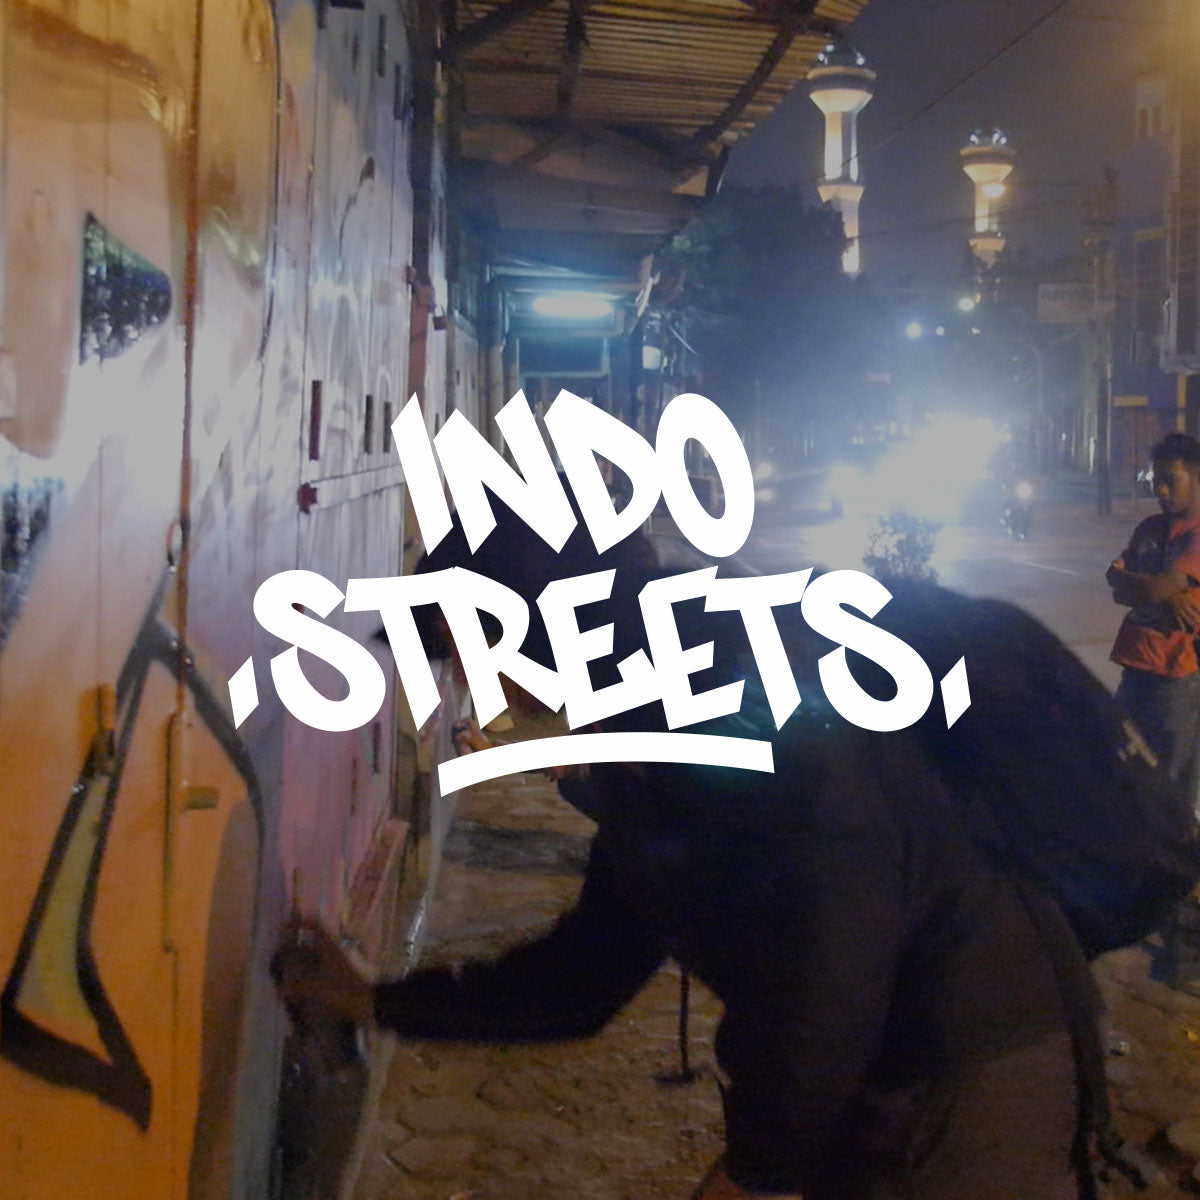 VIDEO - INDO STREETS